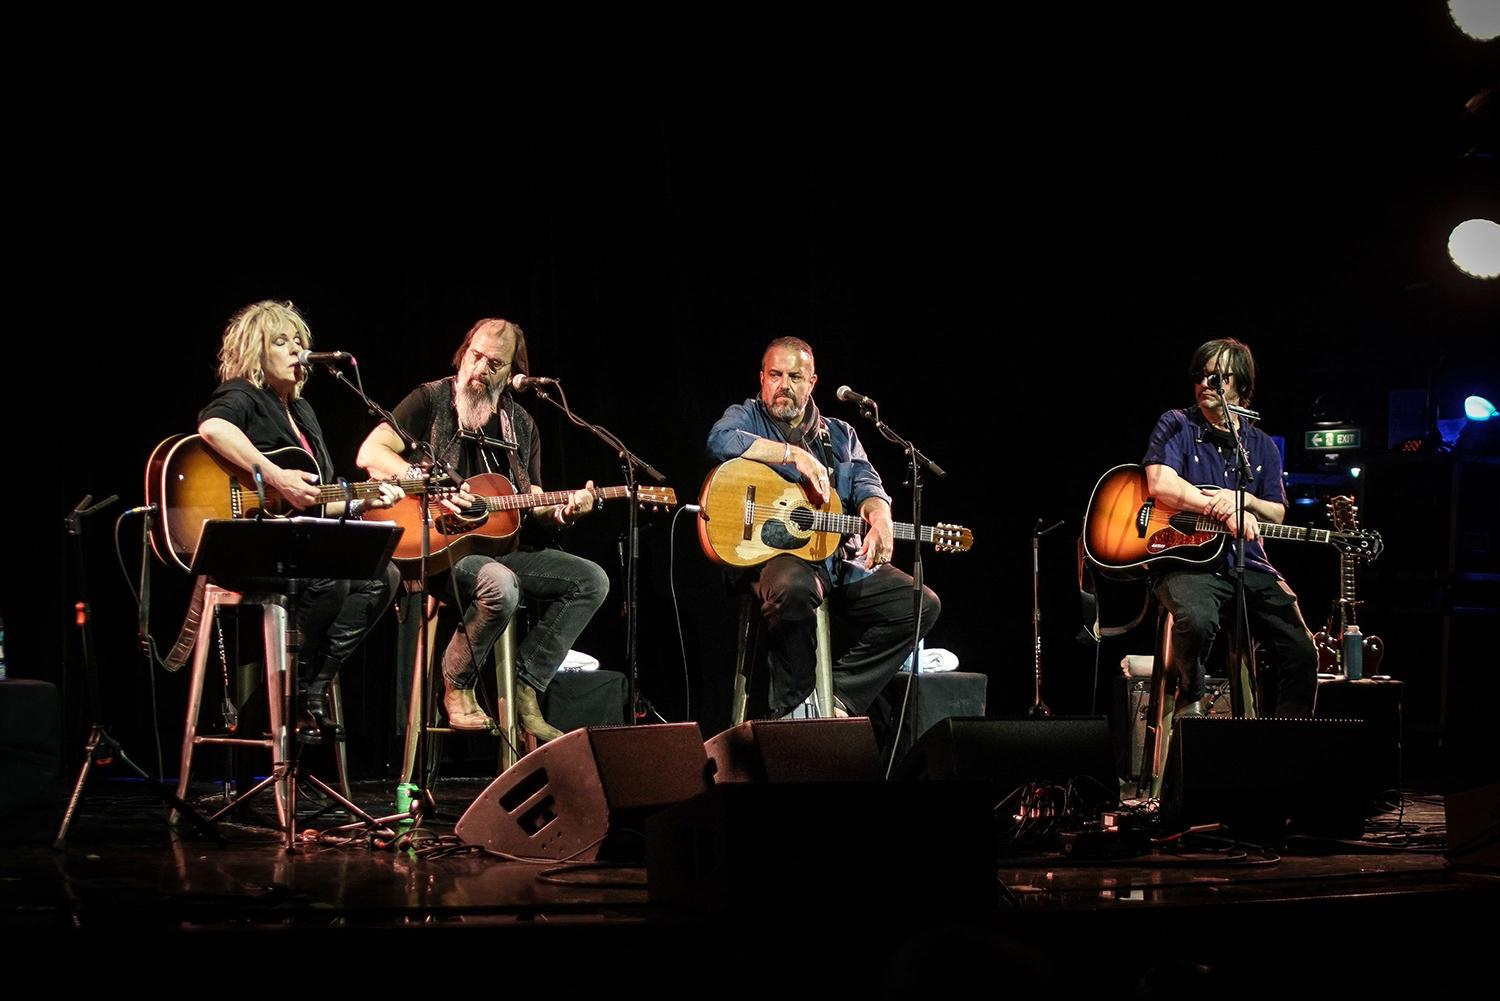 Hear Steve Earle Lead All-Star Guitar Pull in 'This Land Is Your Land'